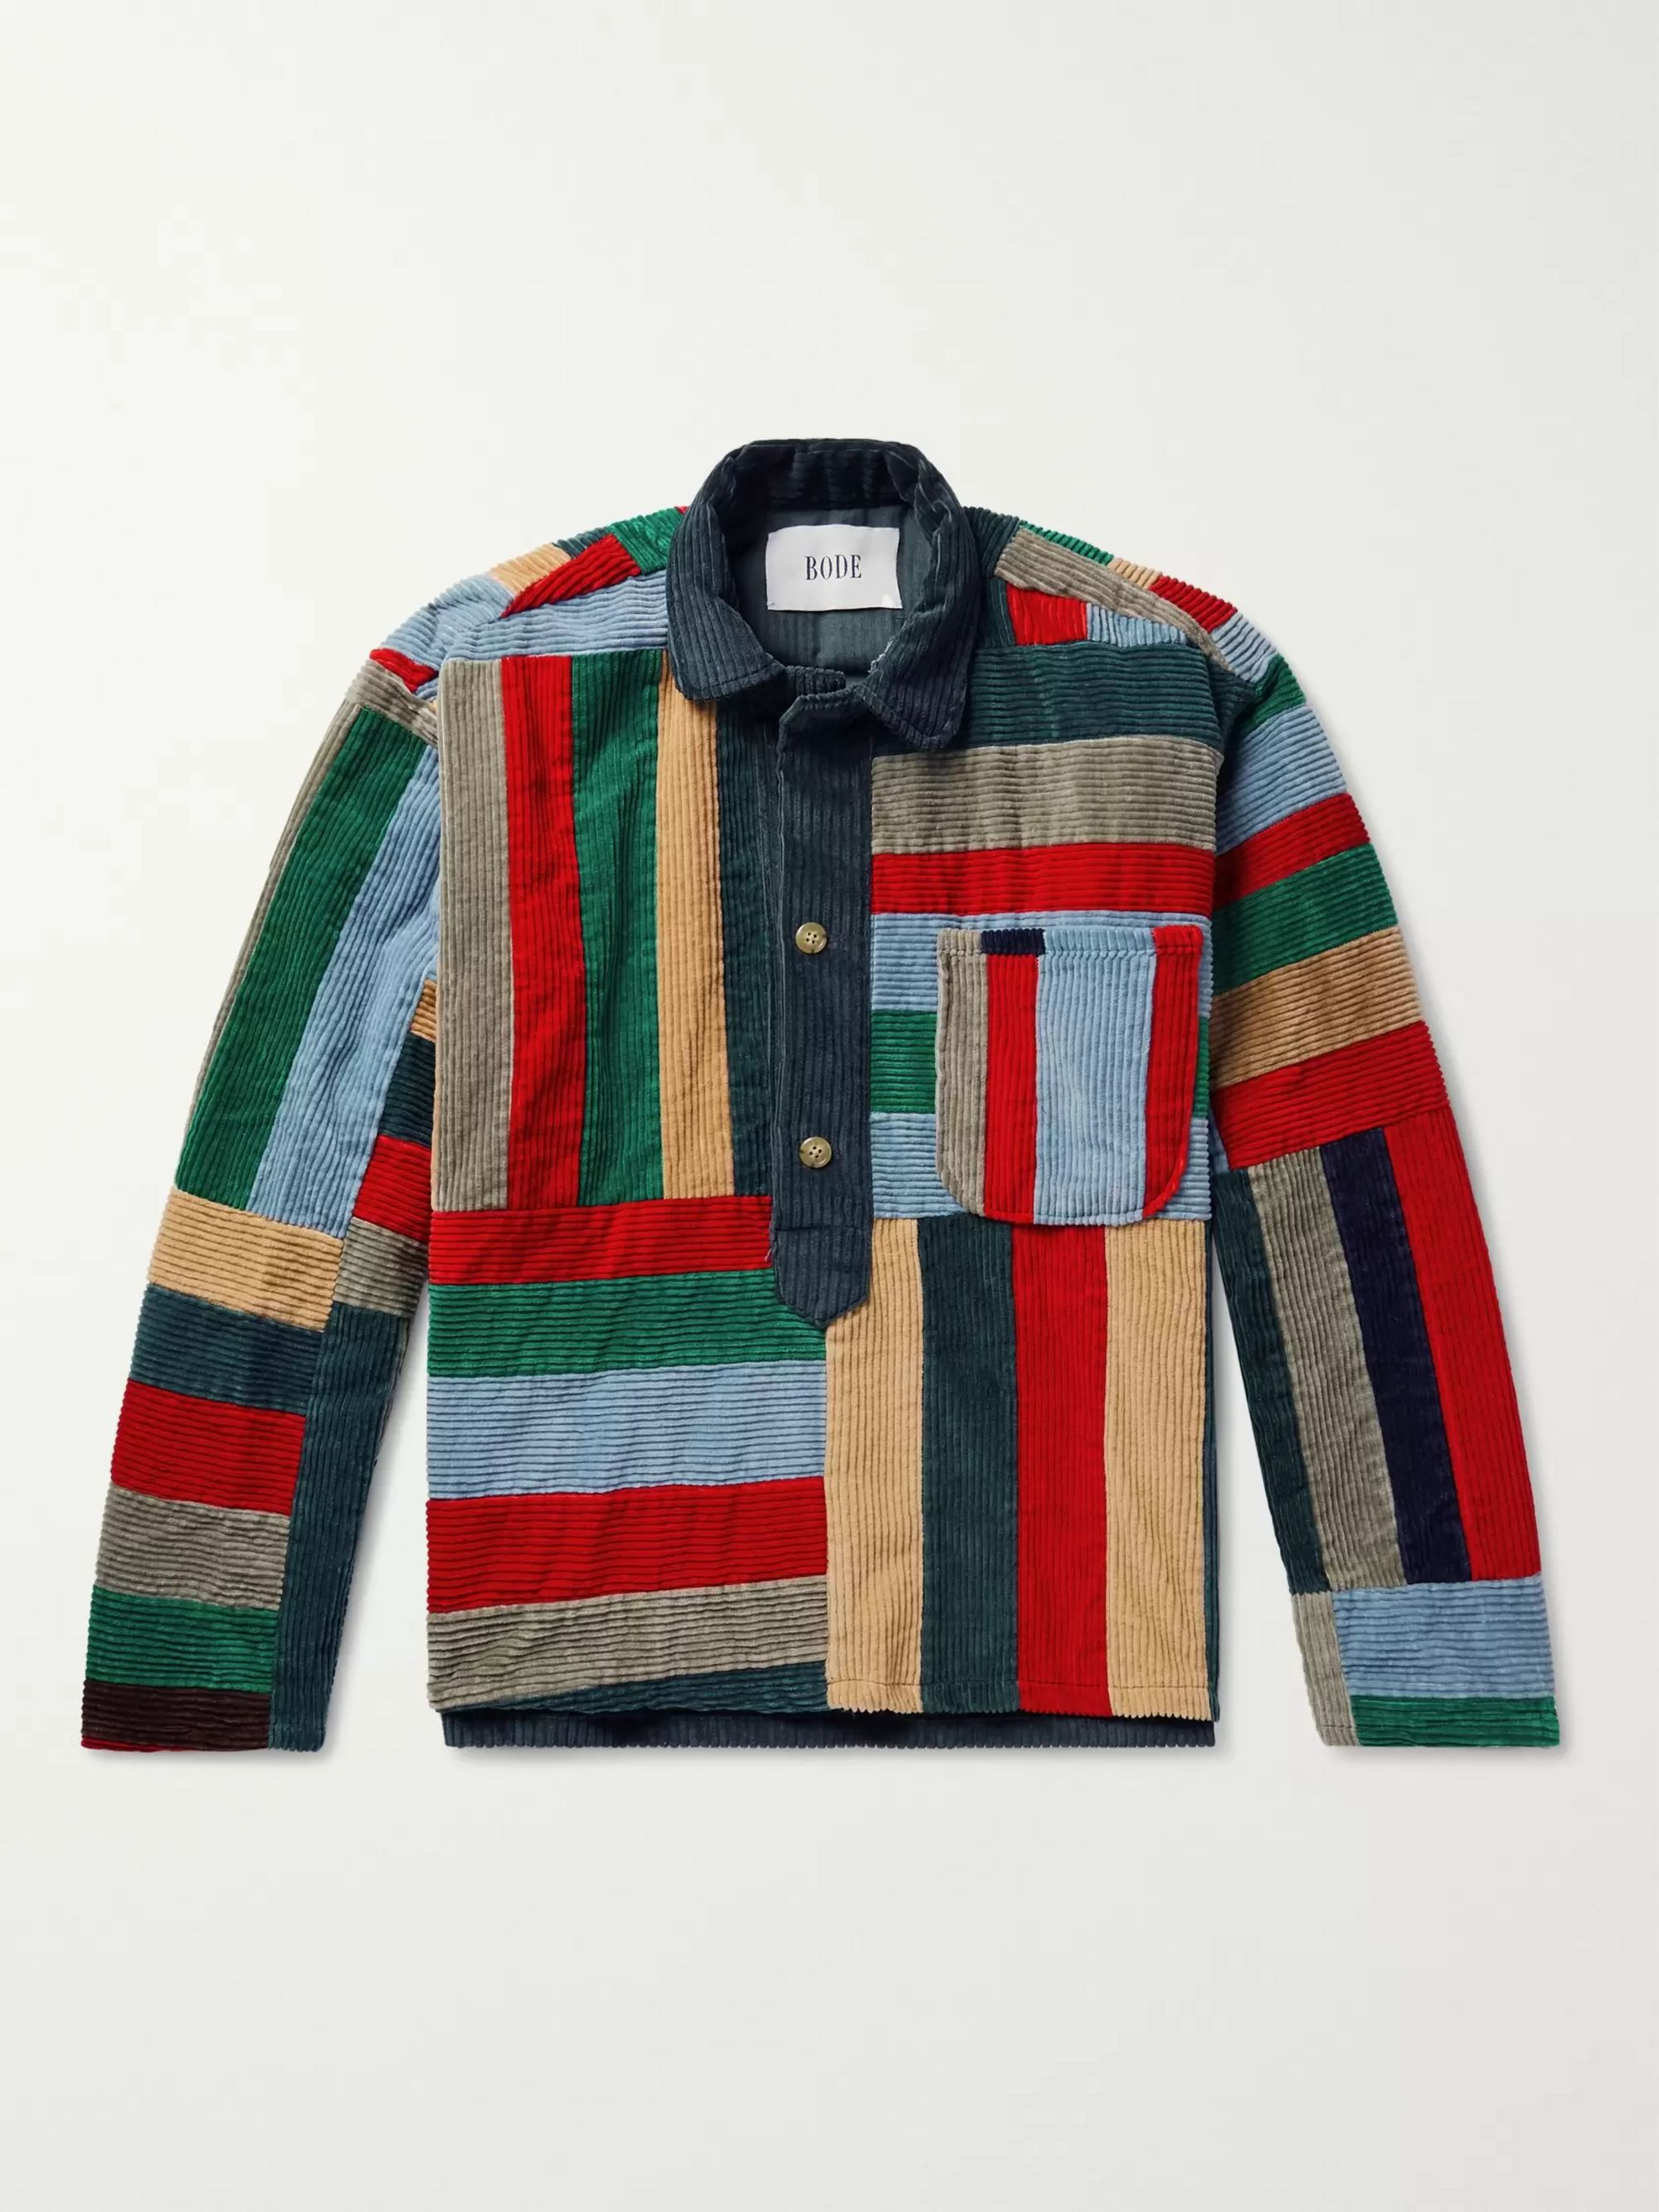 Patchwork Wool Corduroy Overshirt by Bode